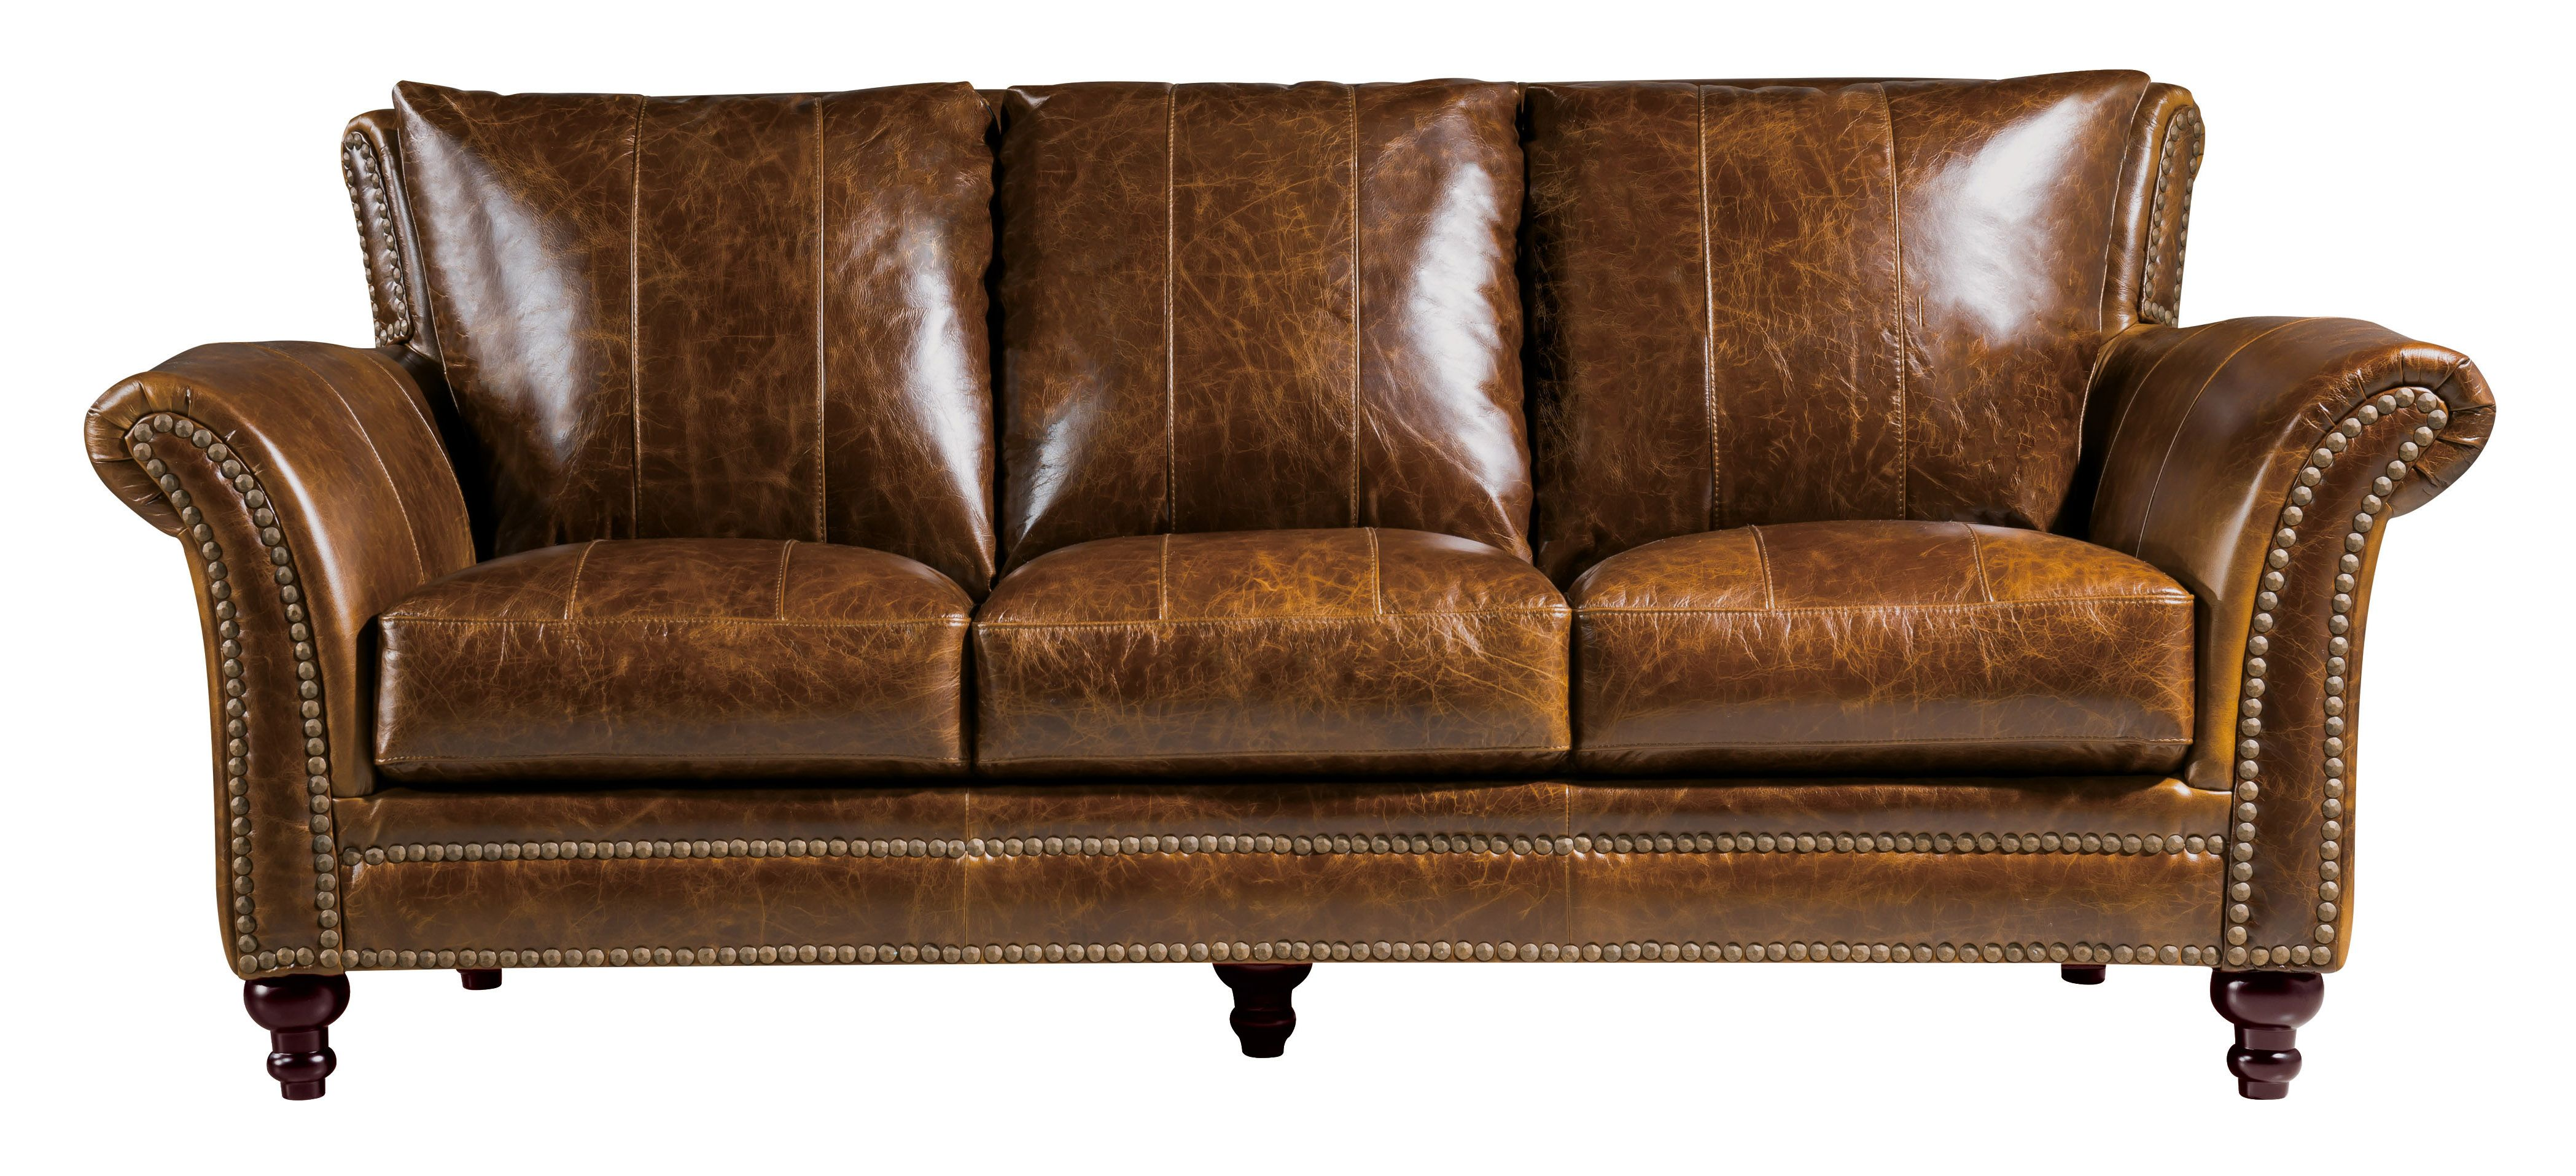 leather italia sofa furniture white sets butler by usa georgetown collection brown also available loveseat chair ottoman heritagefurnitureoutlet com